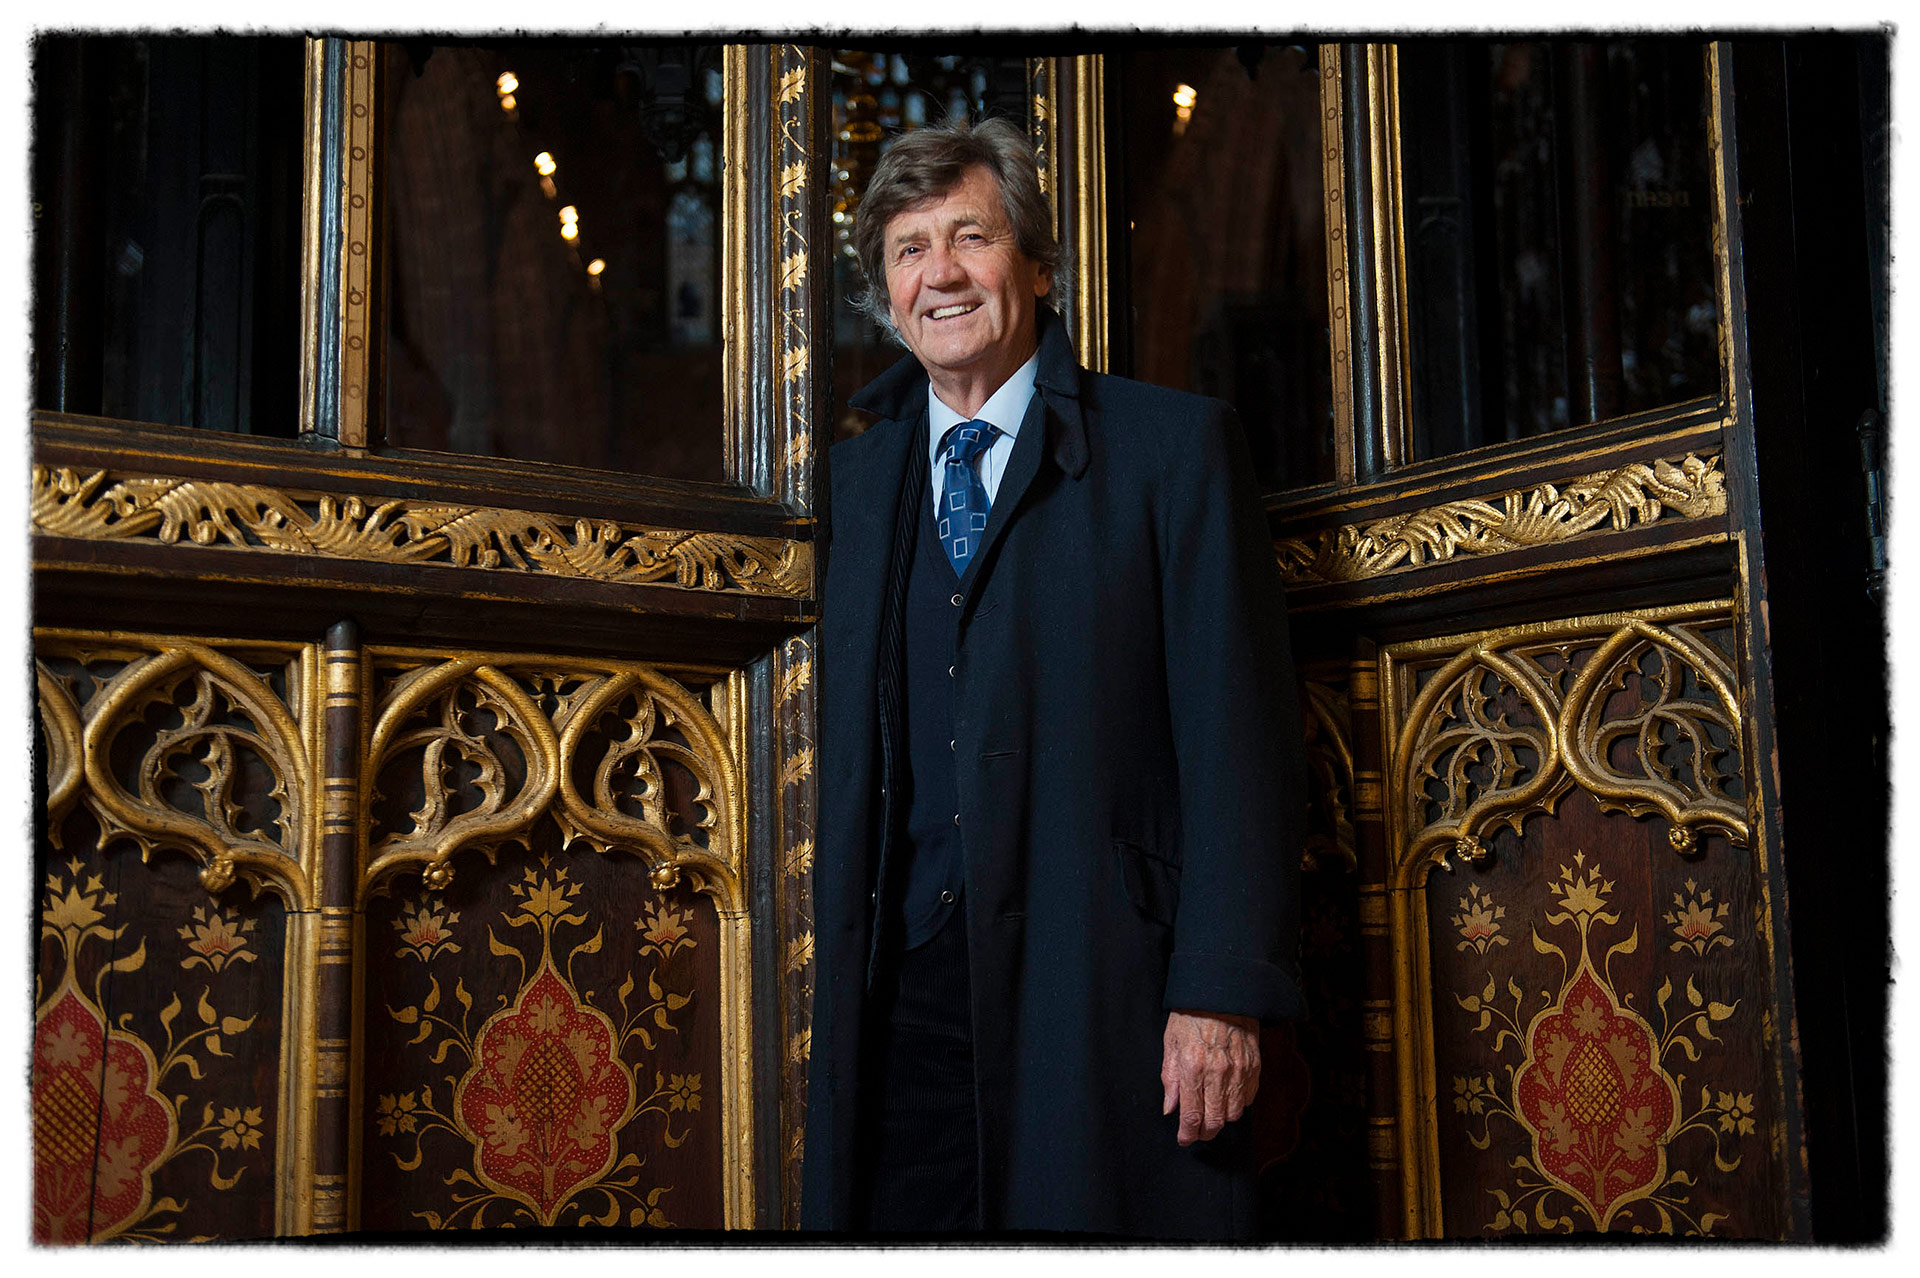 TV personality Melvyn Bragg stands between the choir stall doors at Manchester Cathedral.